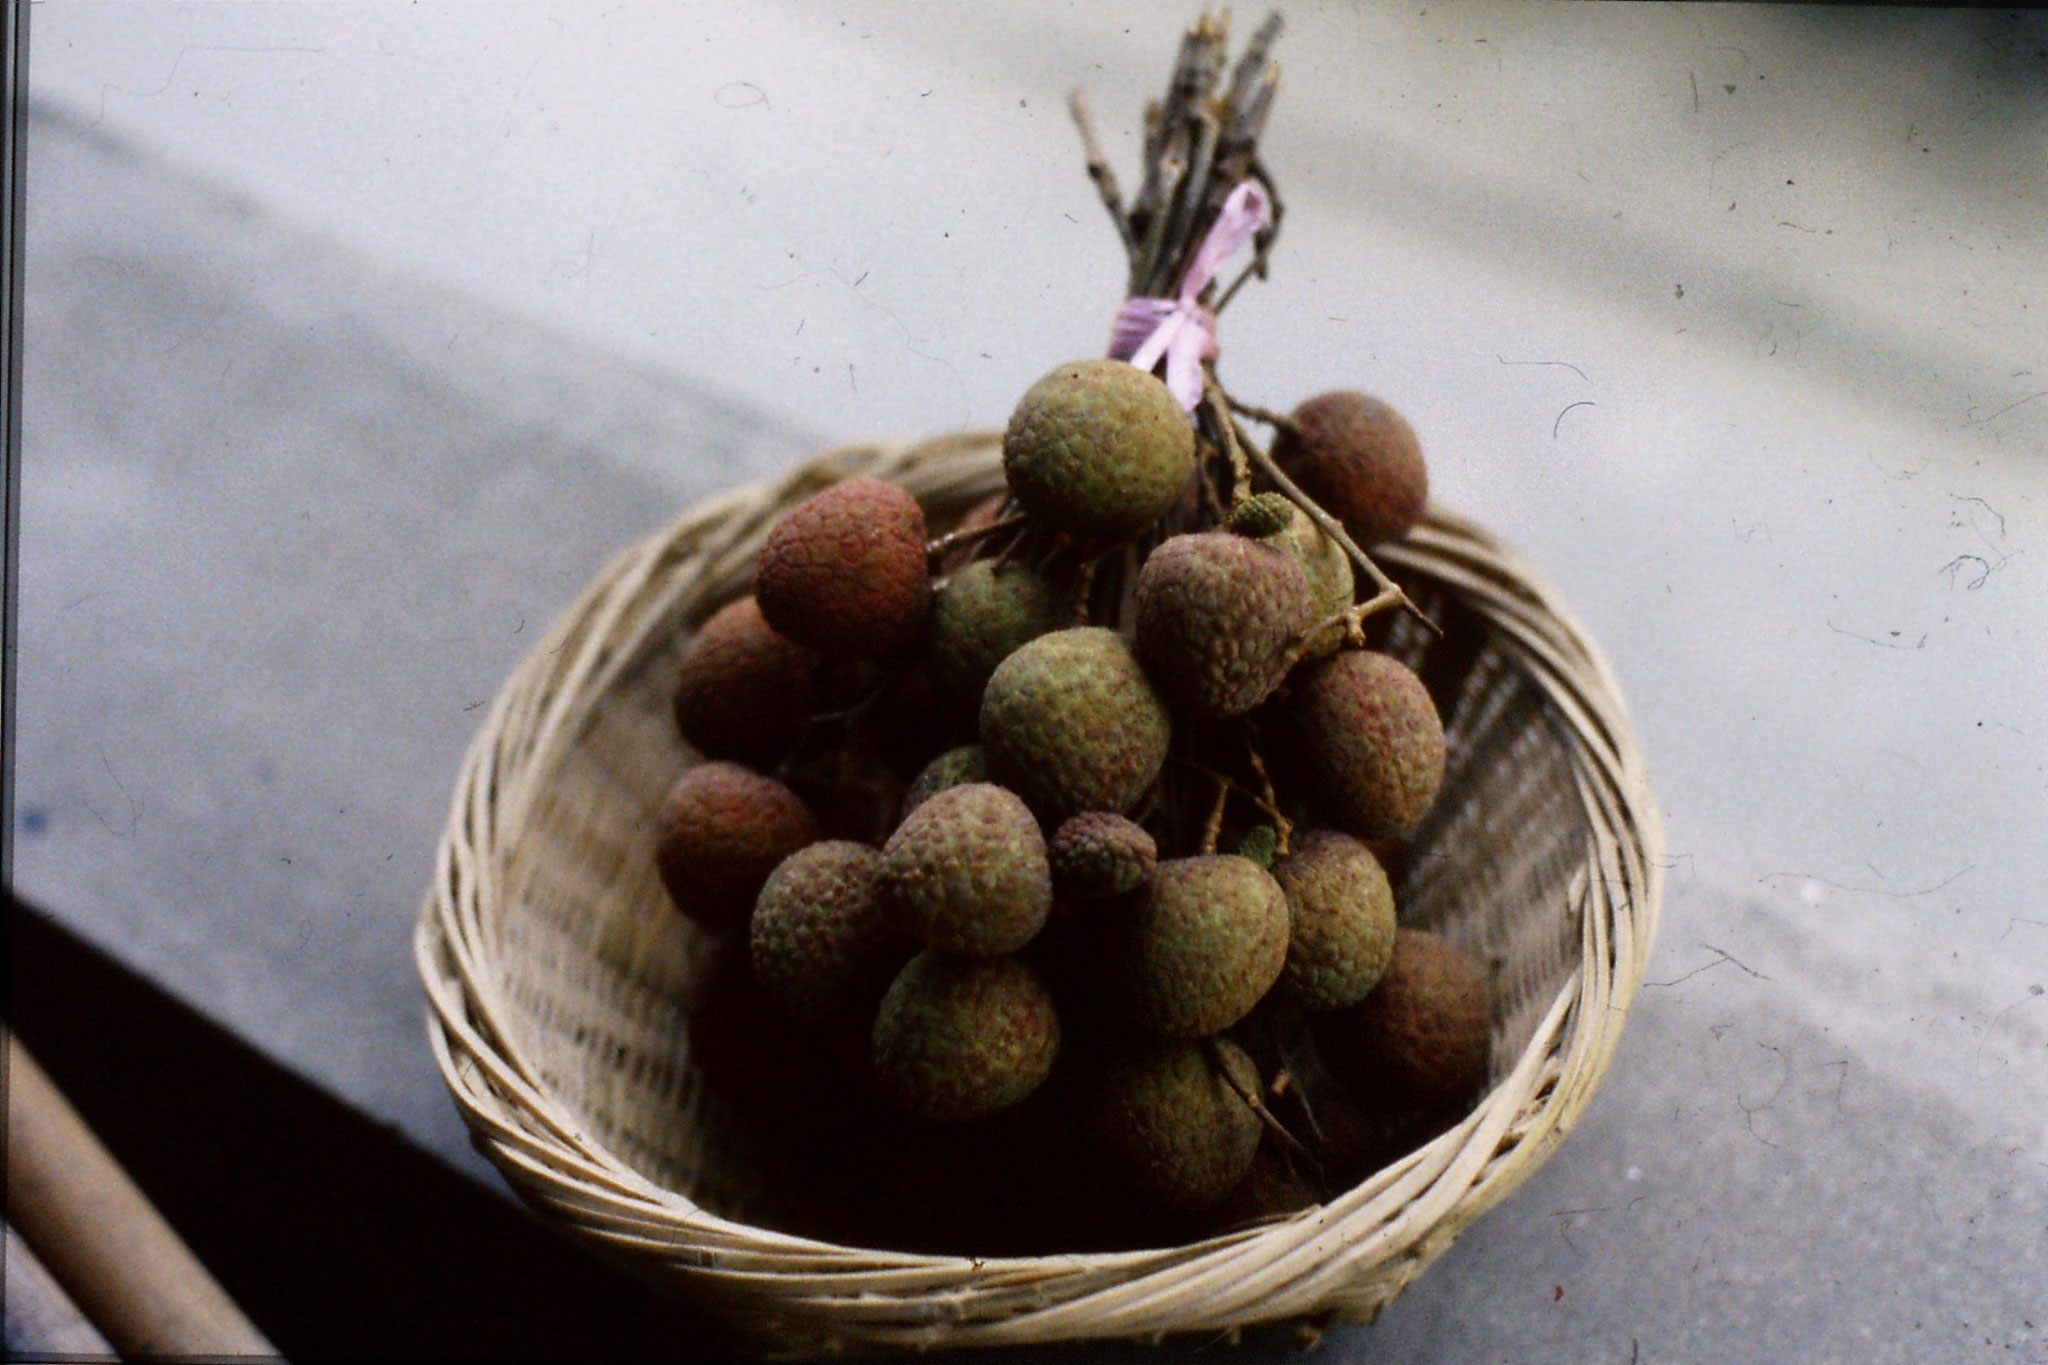 25/6/1989: 15: lychees - 9.6 yuan